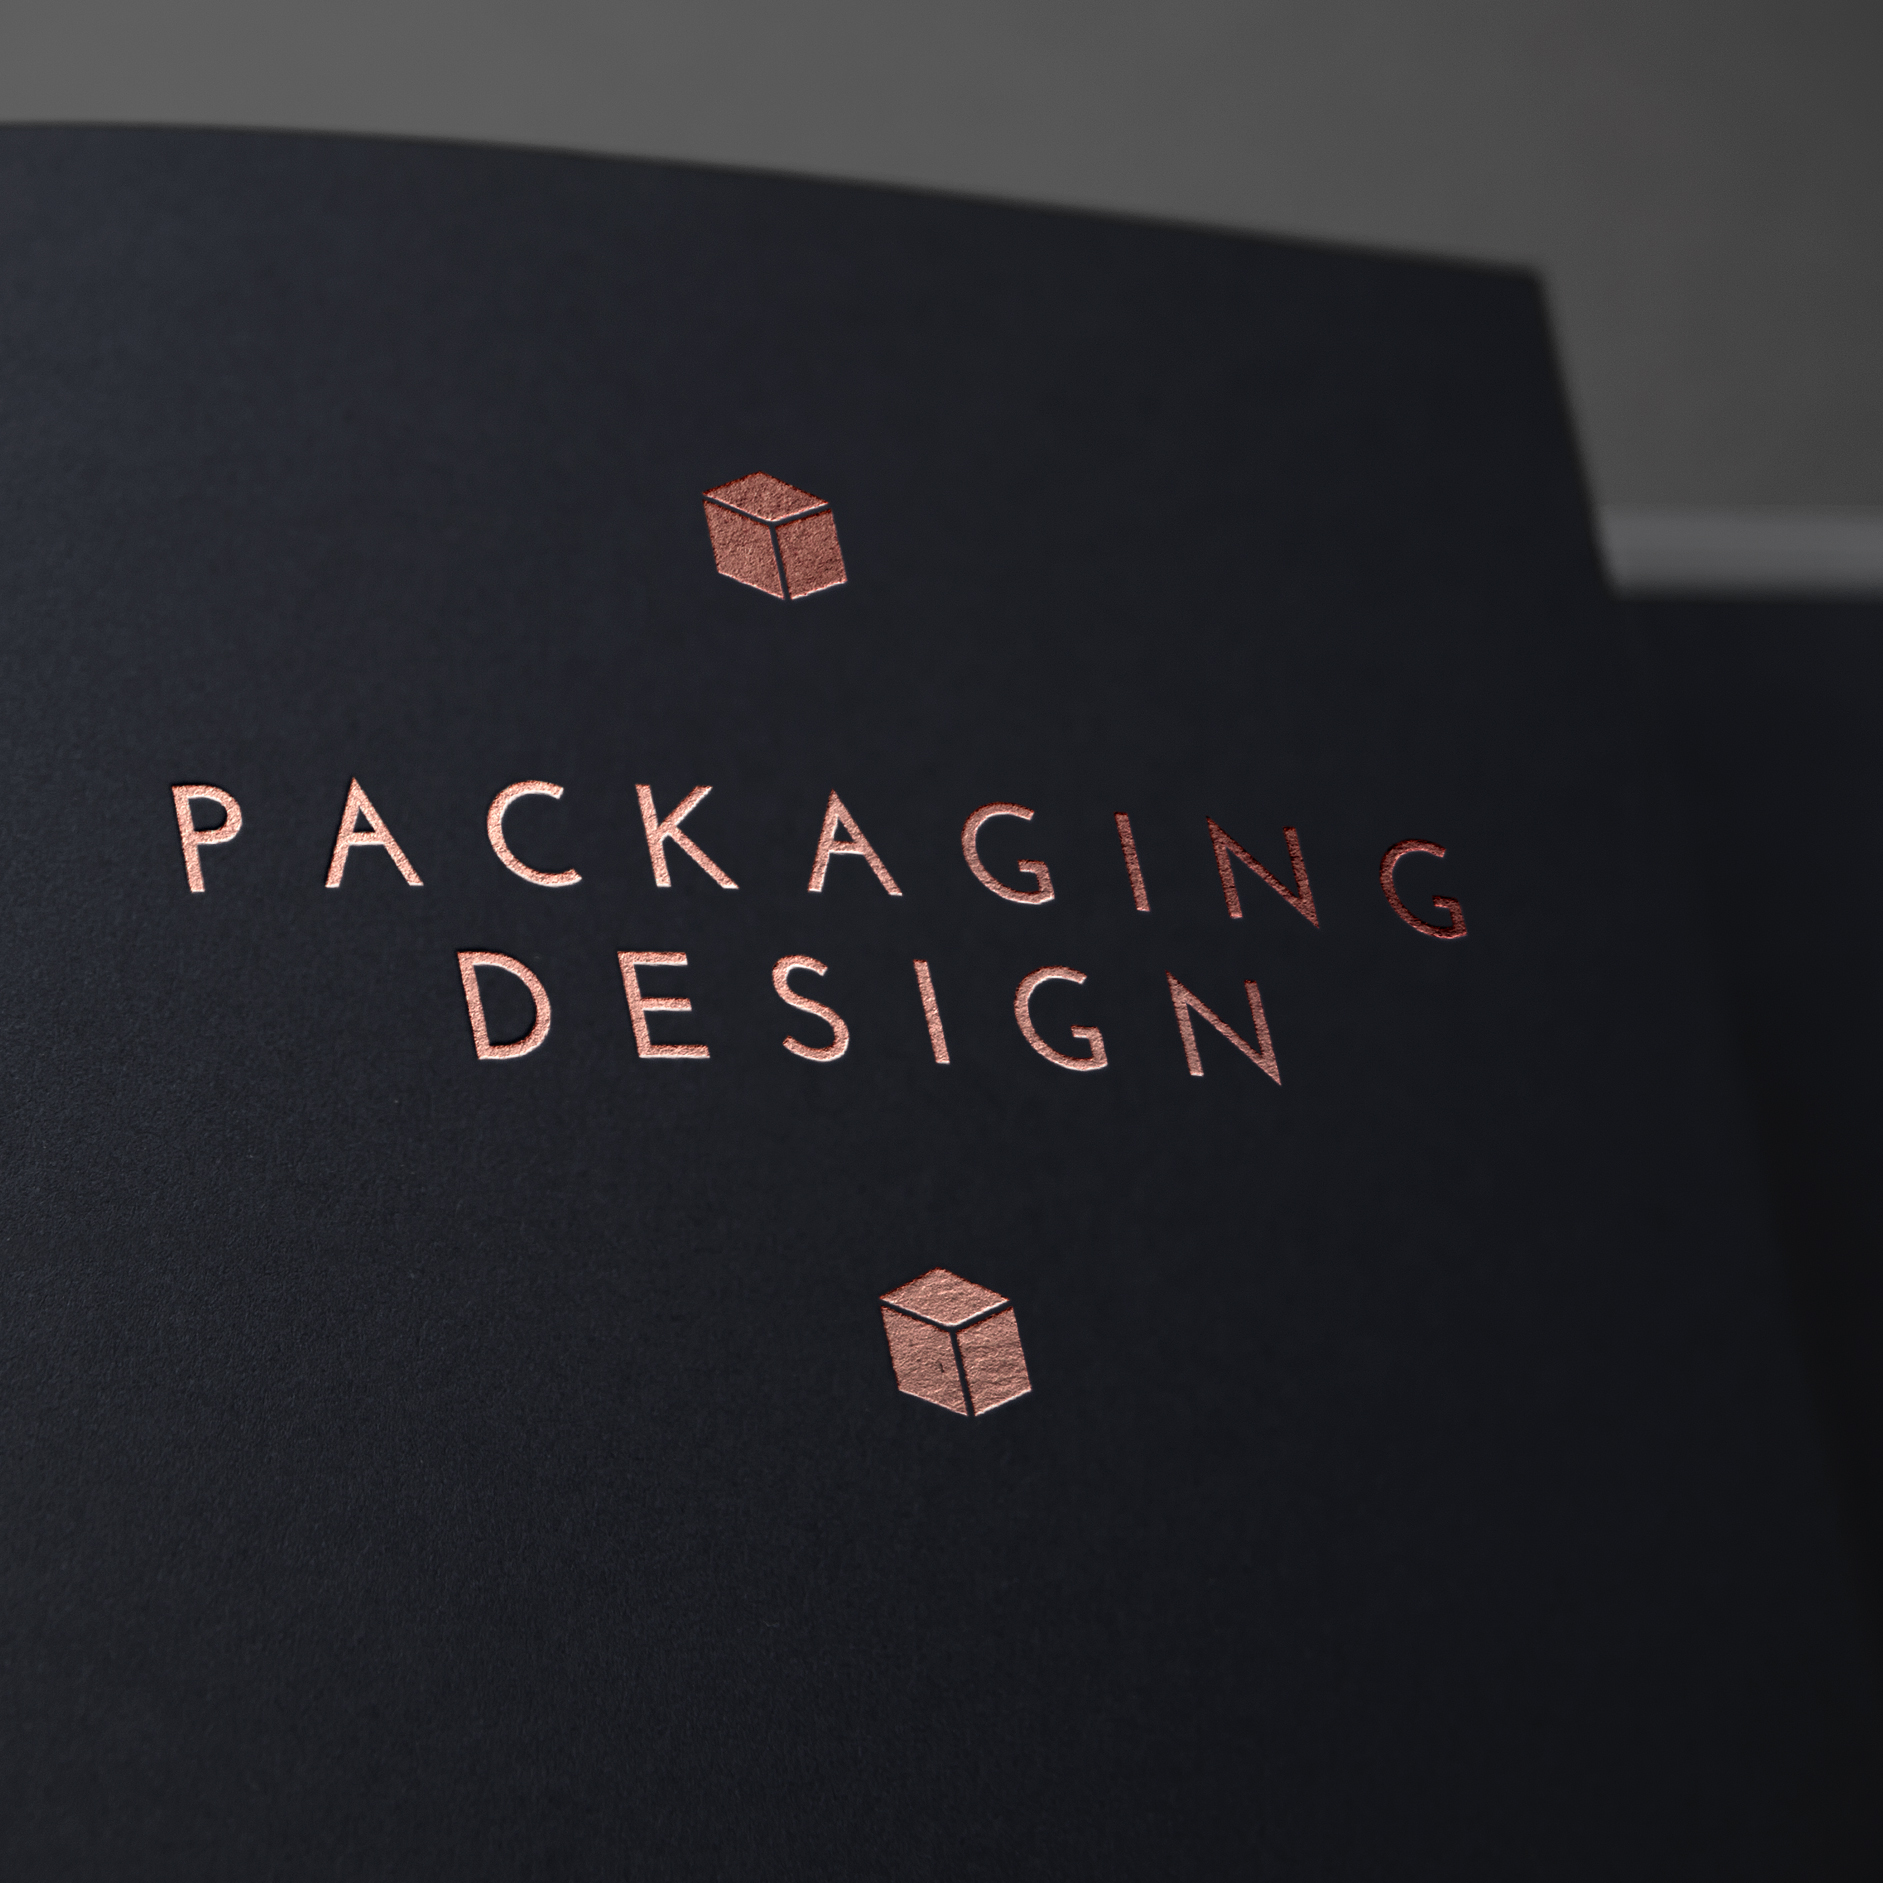 With extensive experience in the beauty, skincare, alcohol and FMCG markets, I love to work on packaging projects big and small. From end to end our service offers concept development, research, production and print management.